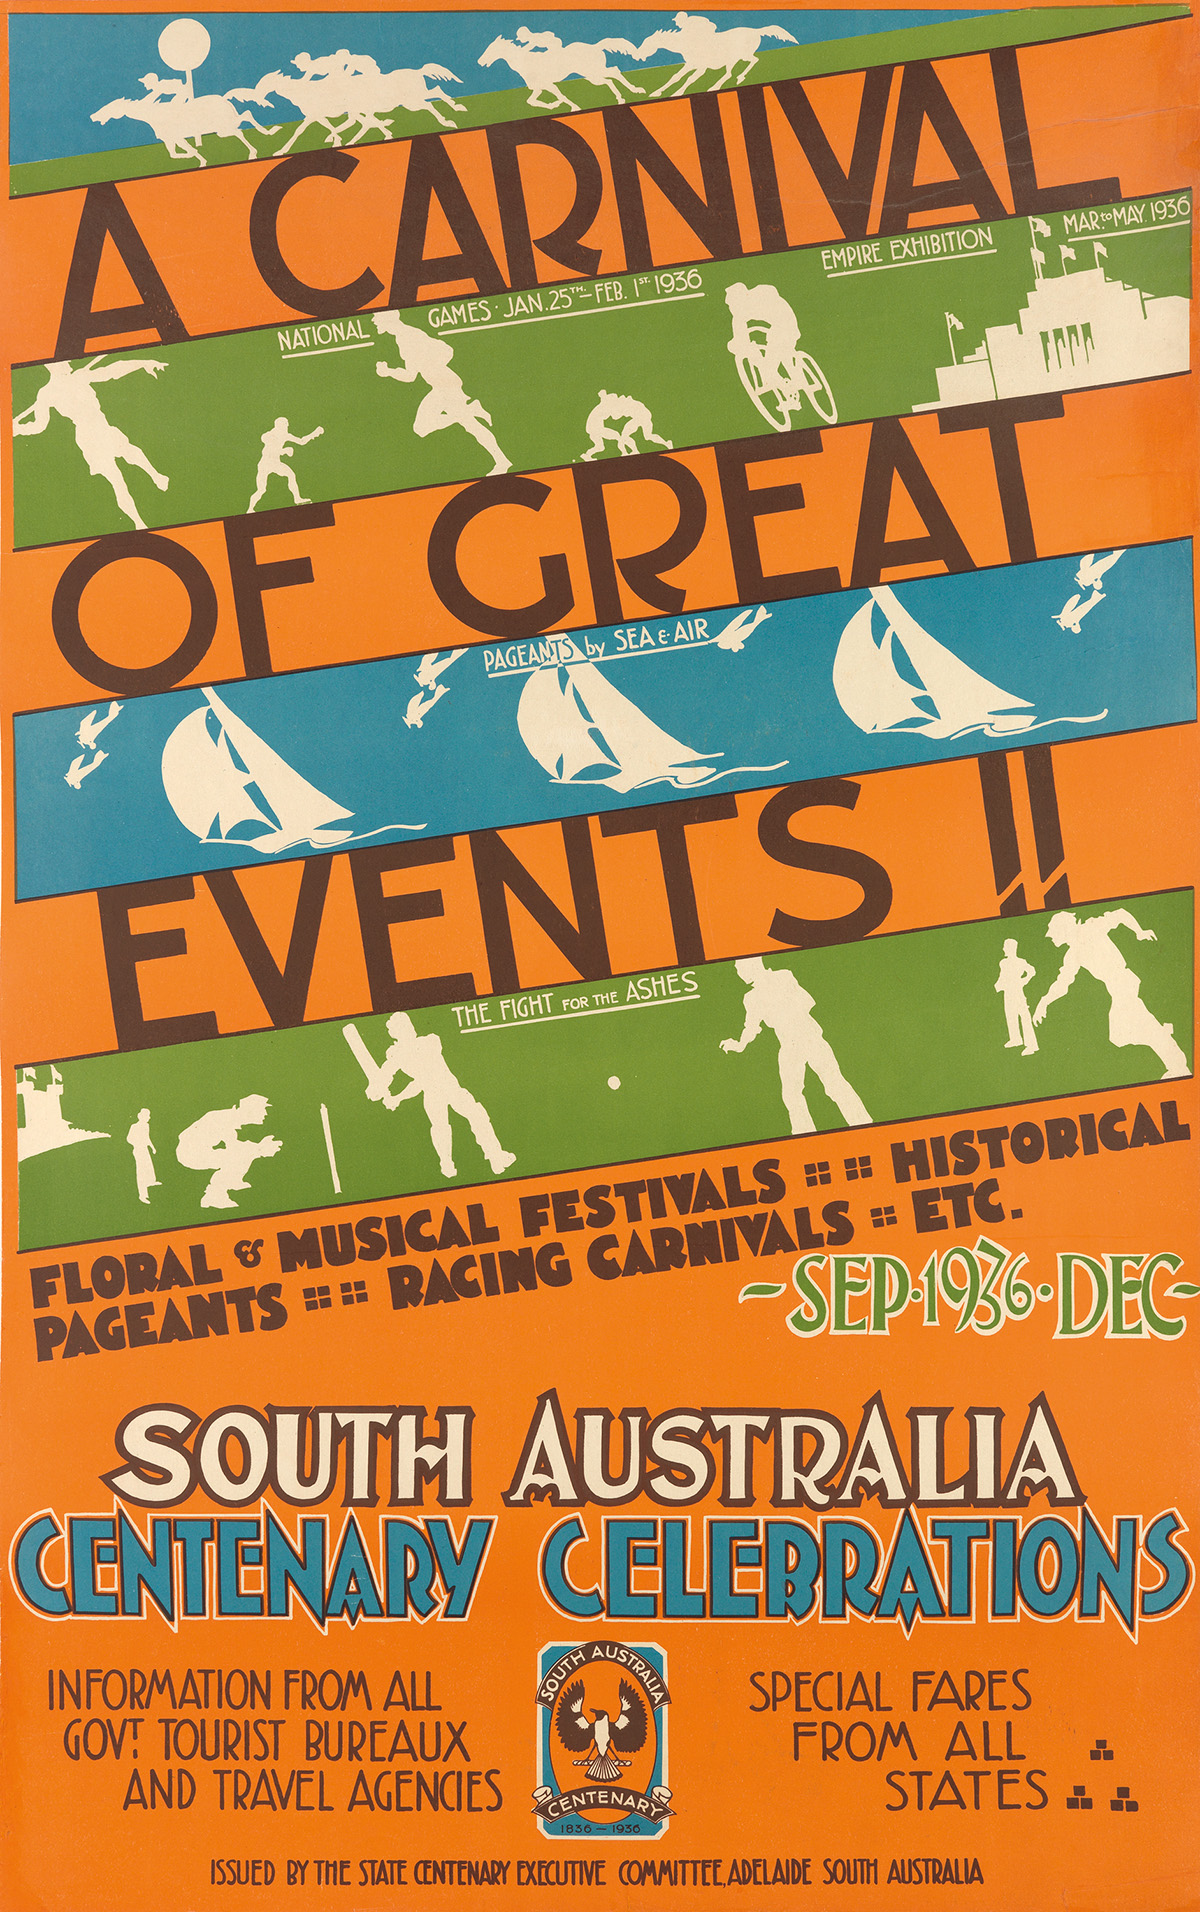 DESIGNER-UNKNOWN-A-CARNIVAL-OF-GREAT-EVENTS--SOUTH-AUSTRALIA-CENTENARY-CELEBRATIONS-1936-39x25-inches-101x63-cm